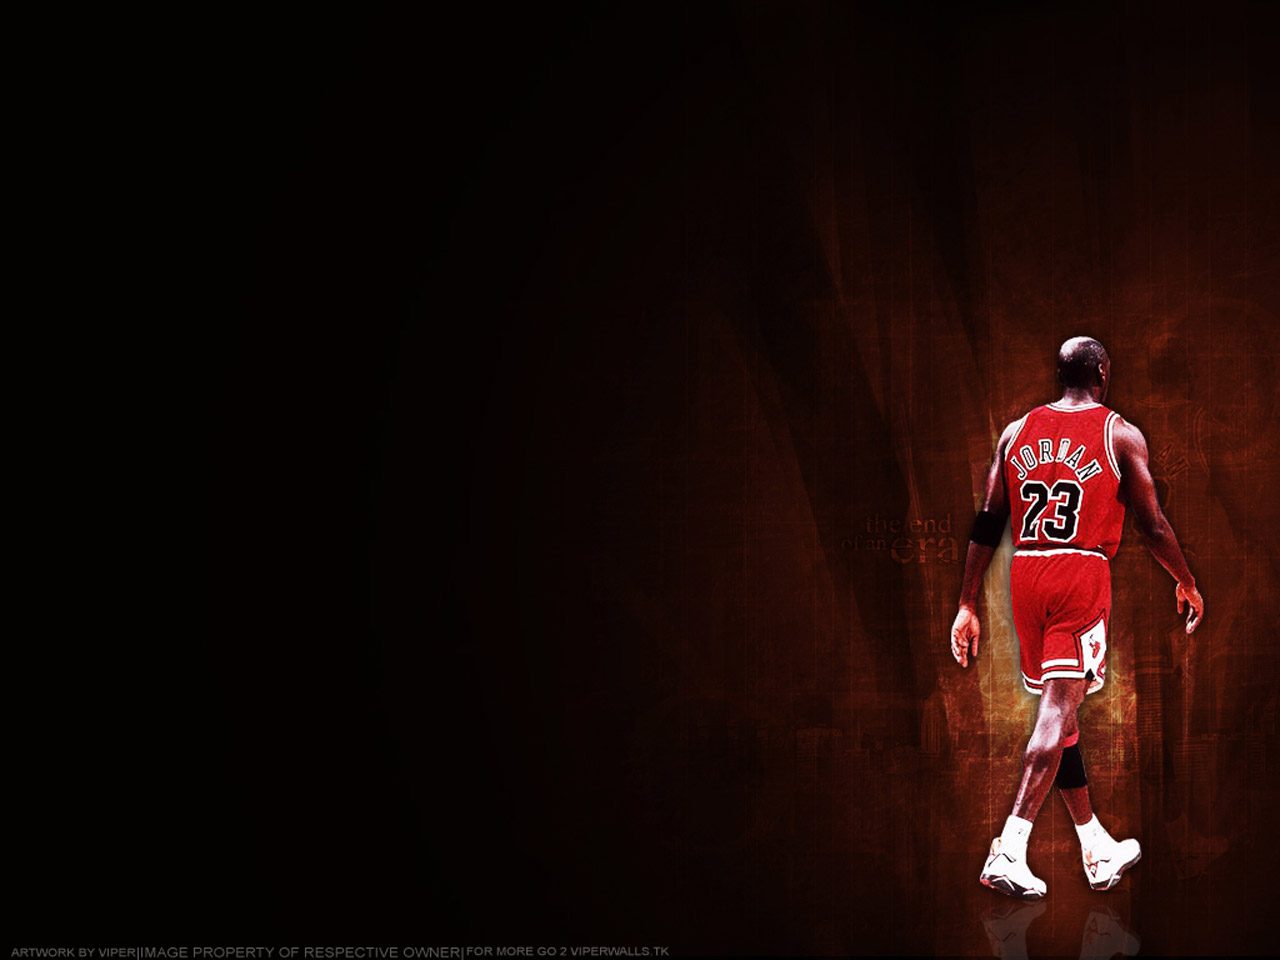 75 Jordan Wallpaper Hd On Wallpapersafari